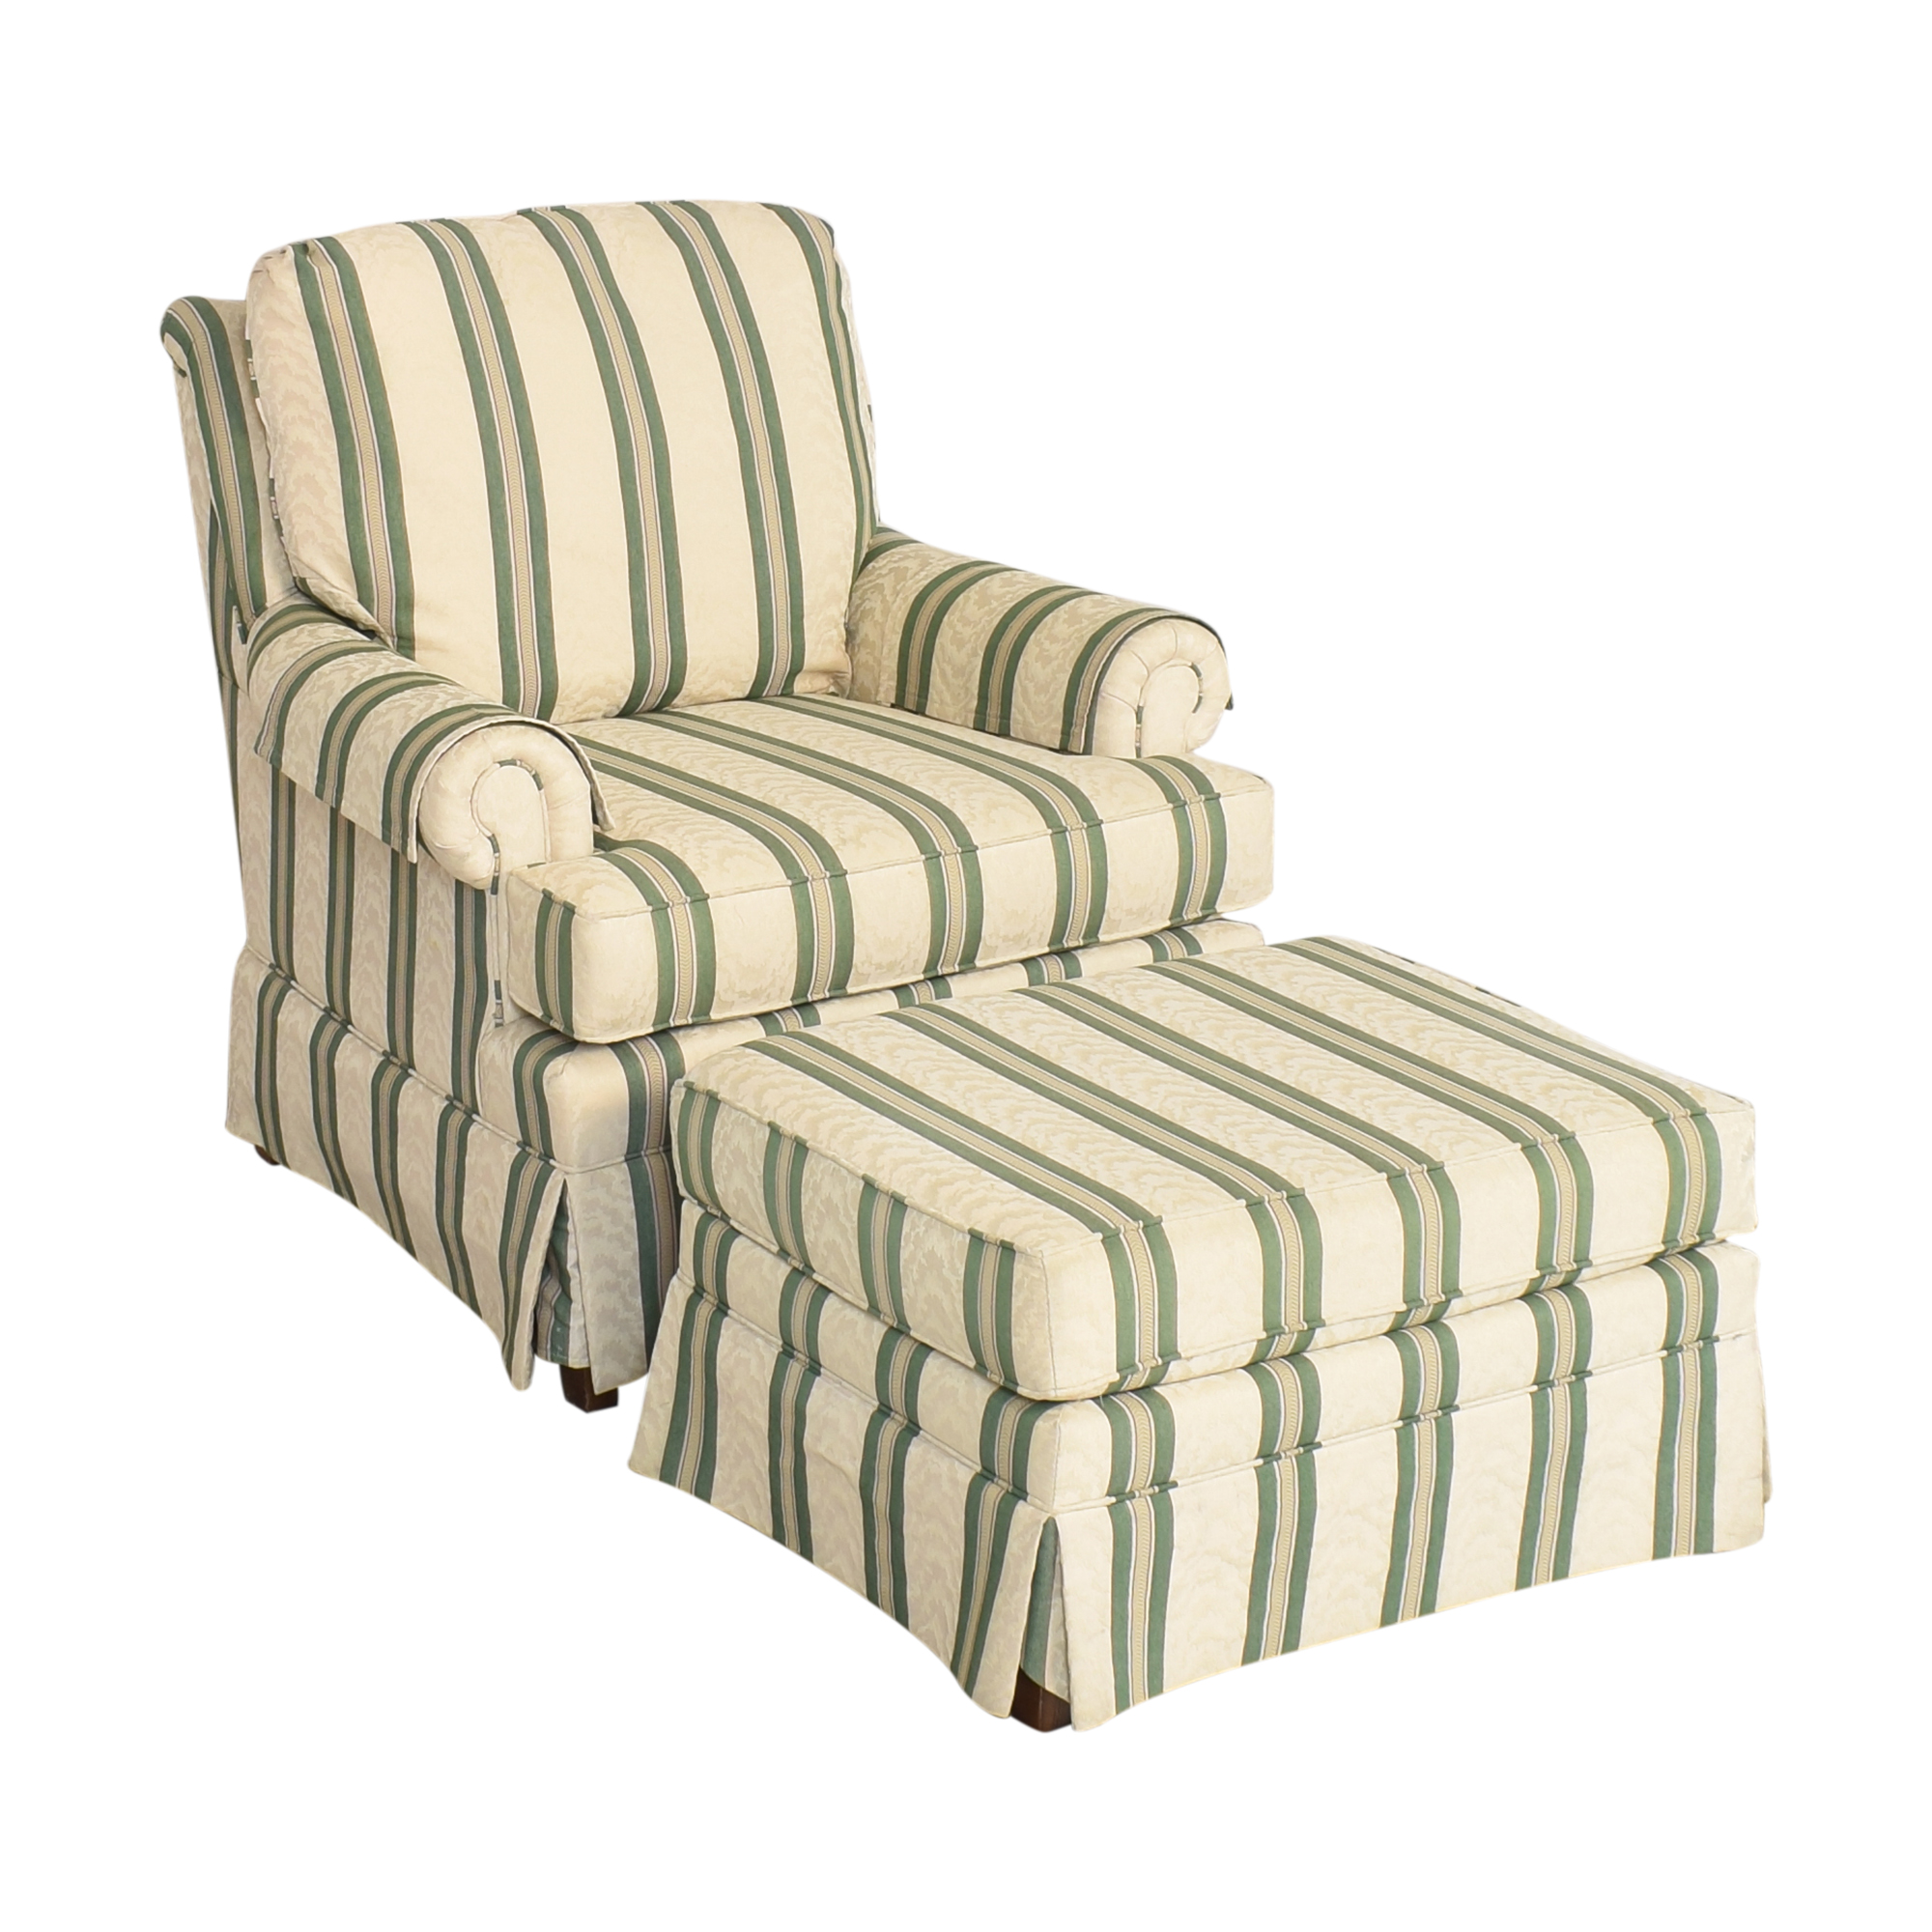 Pembrook Chair Upholstered Accent Chair and Ottoman / Chairs